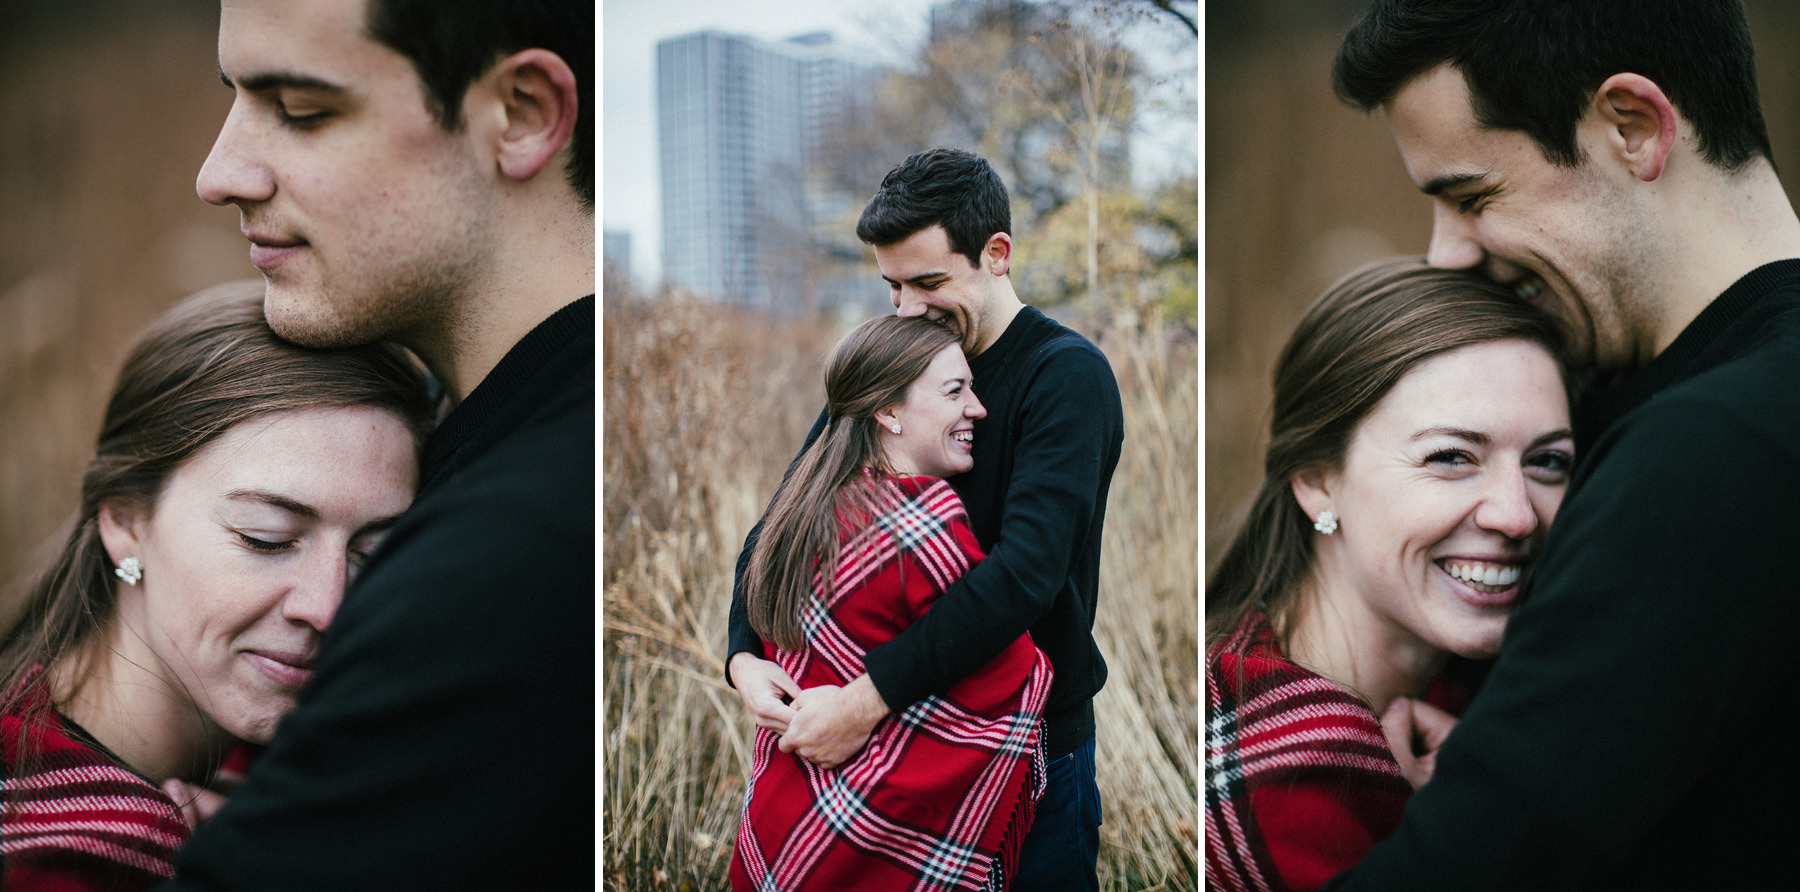 157_Montrose Beach Skyline Engagement Session Chicago, Illinois_Kindling Wedding Photography.JPG